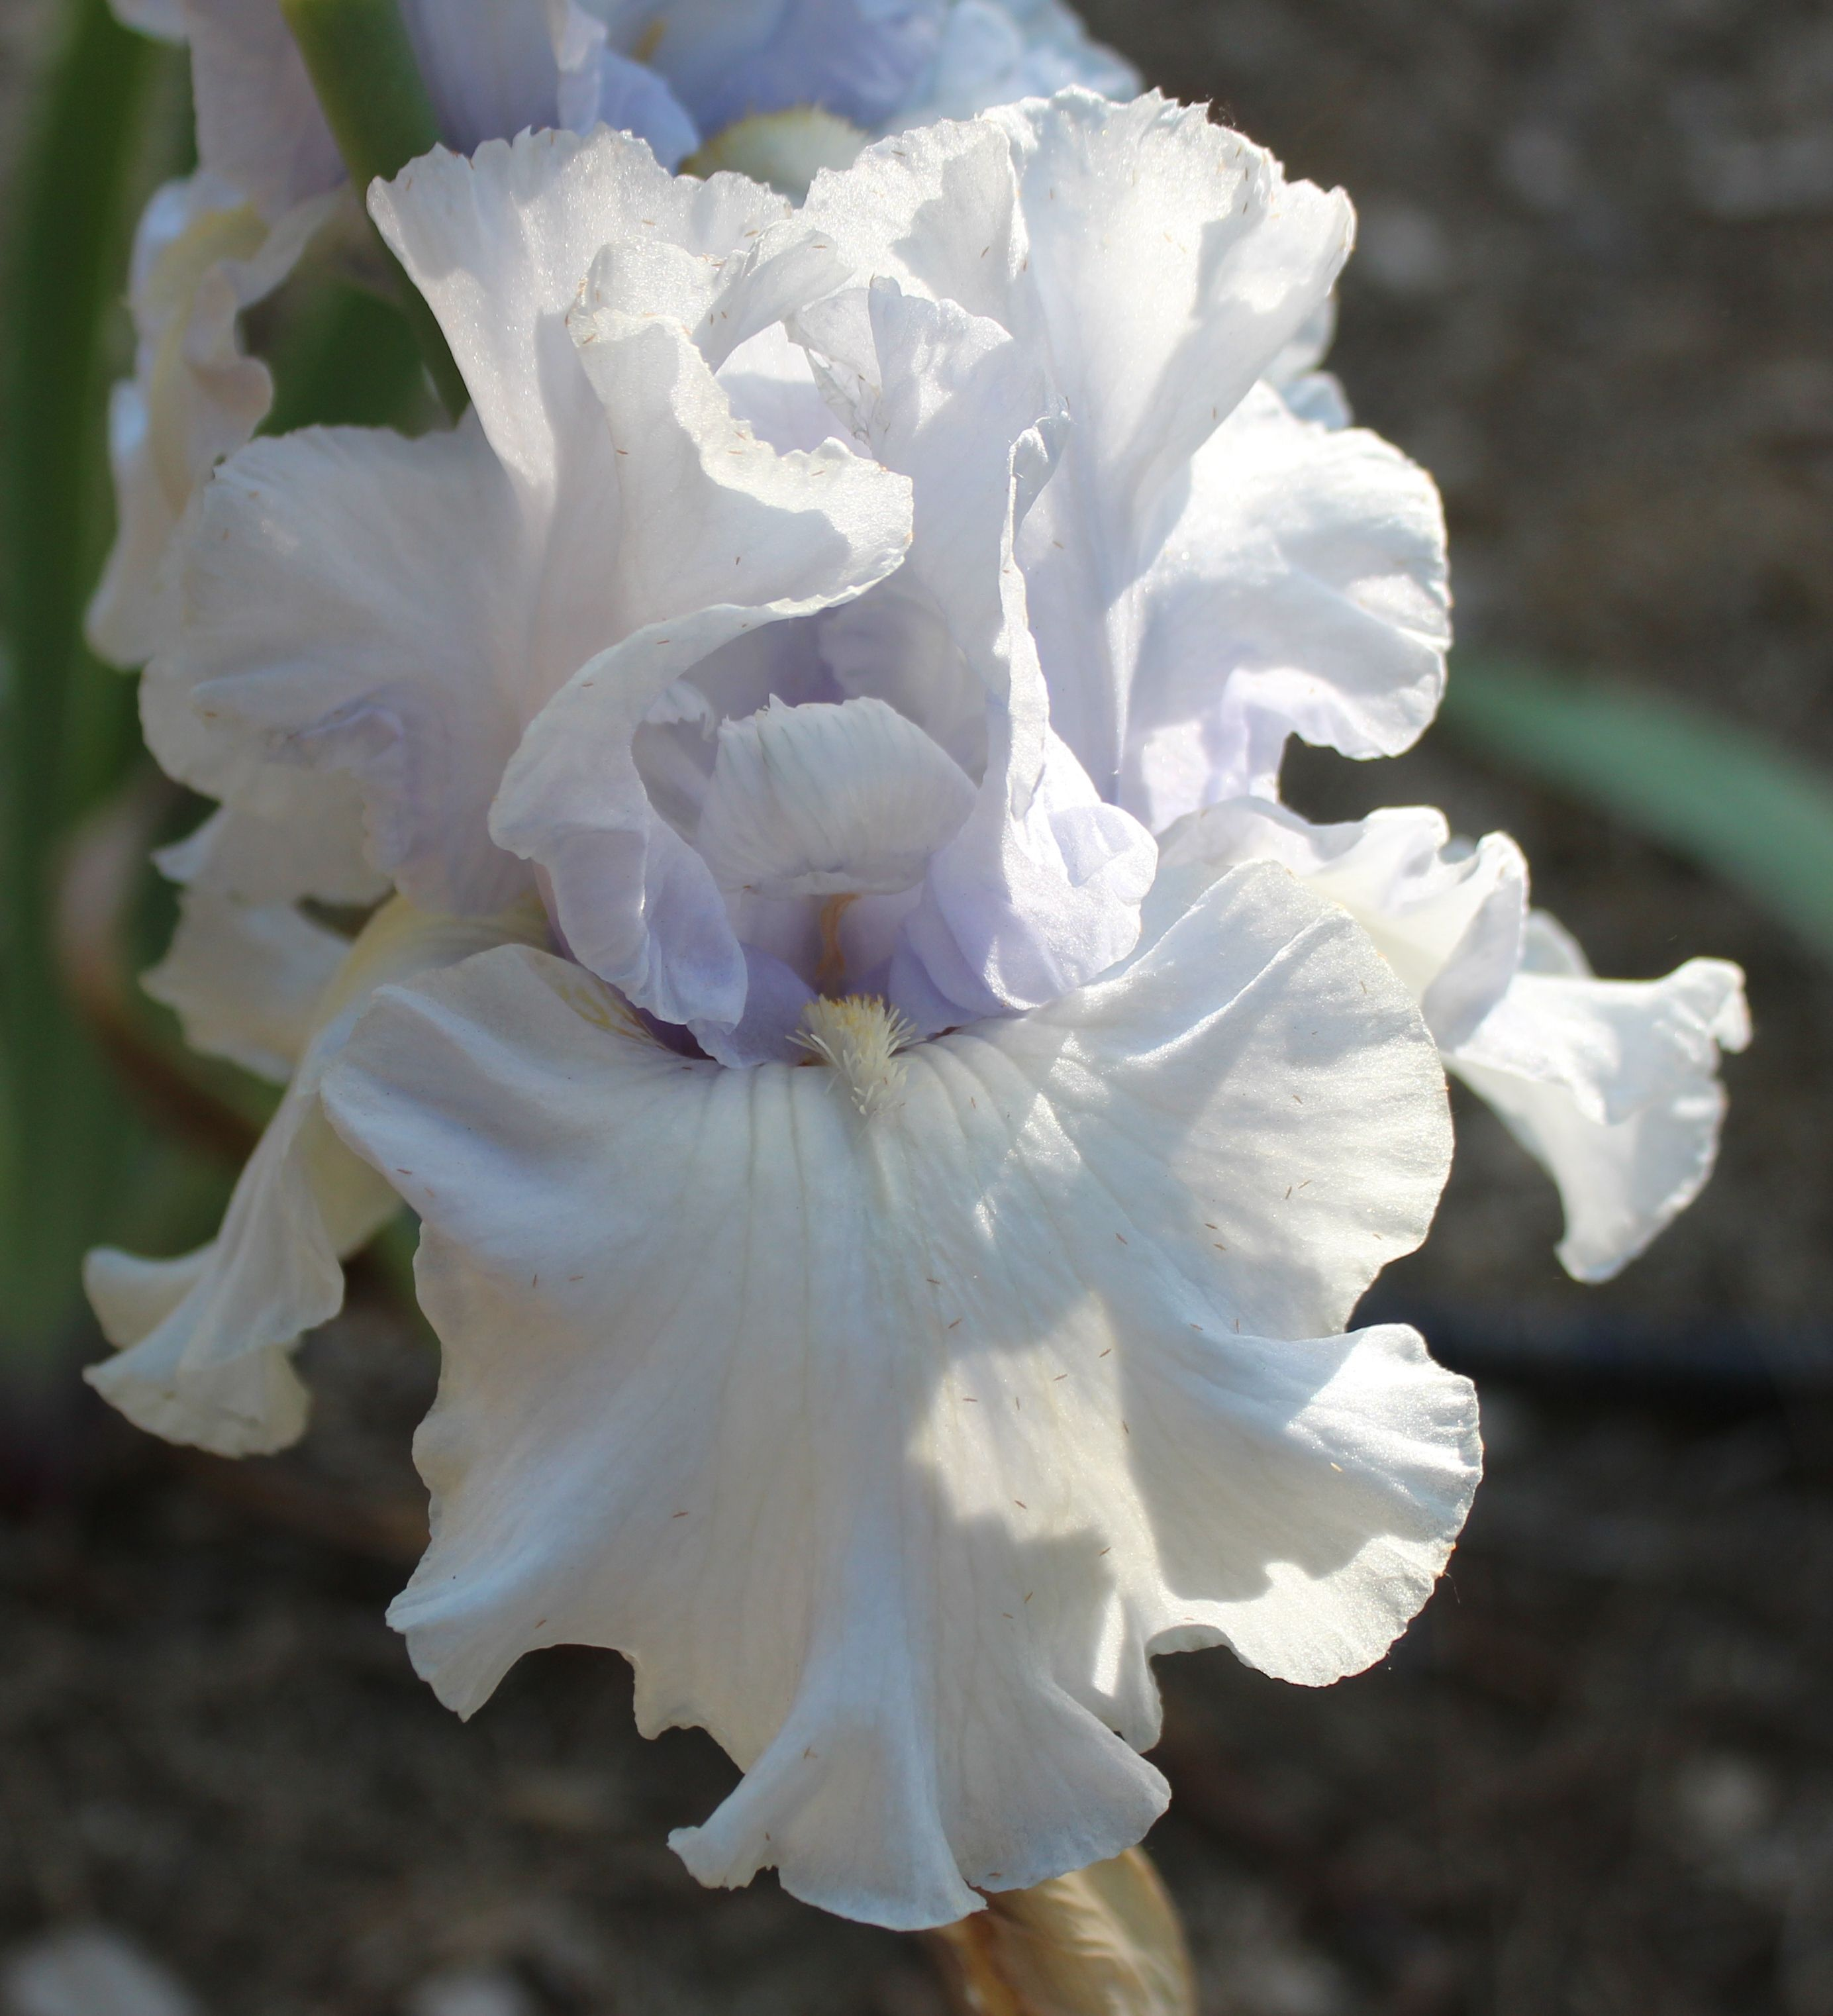 TB Iris germanica 'Tinted Crystal' (Hager, 1987)